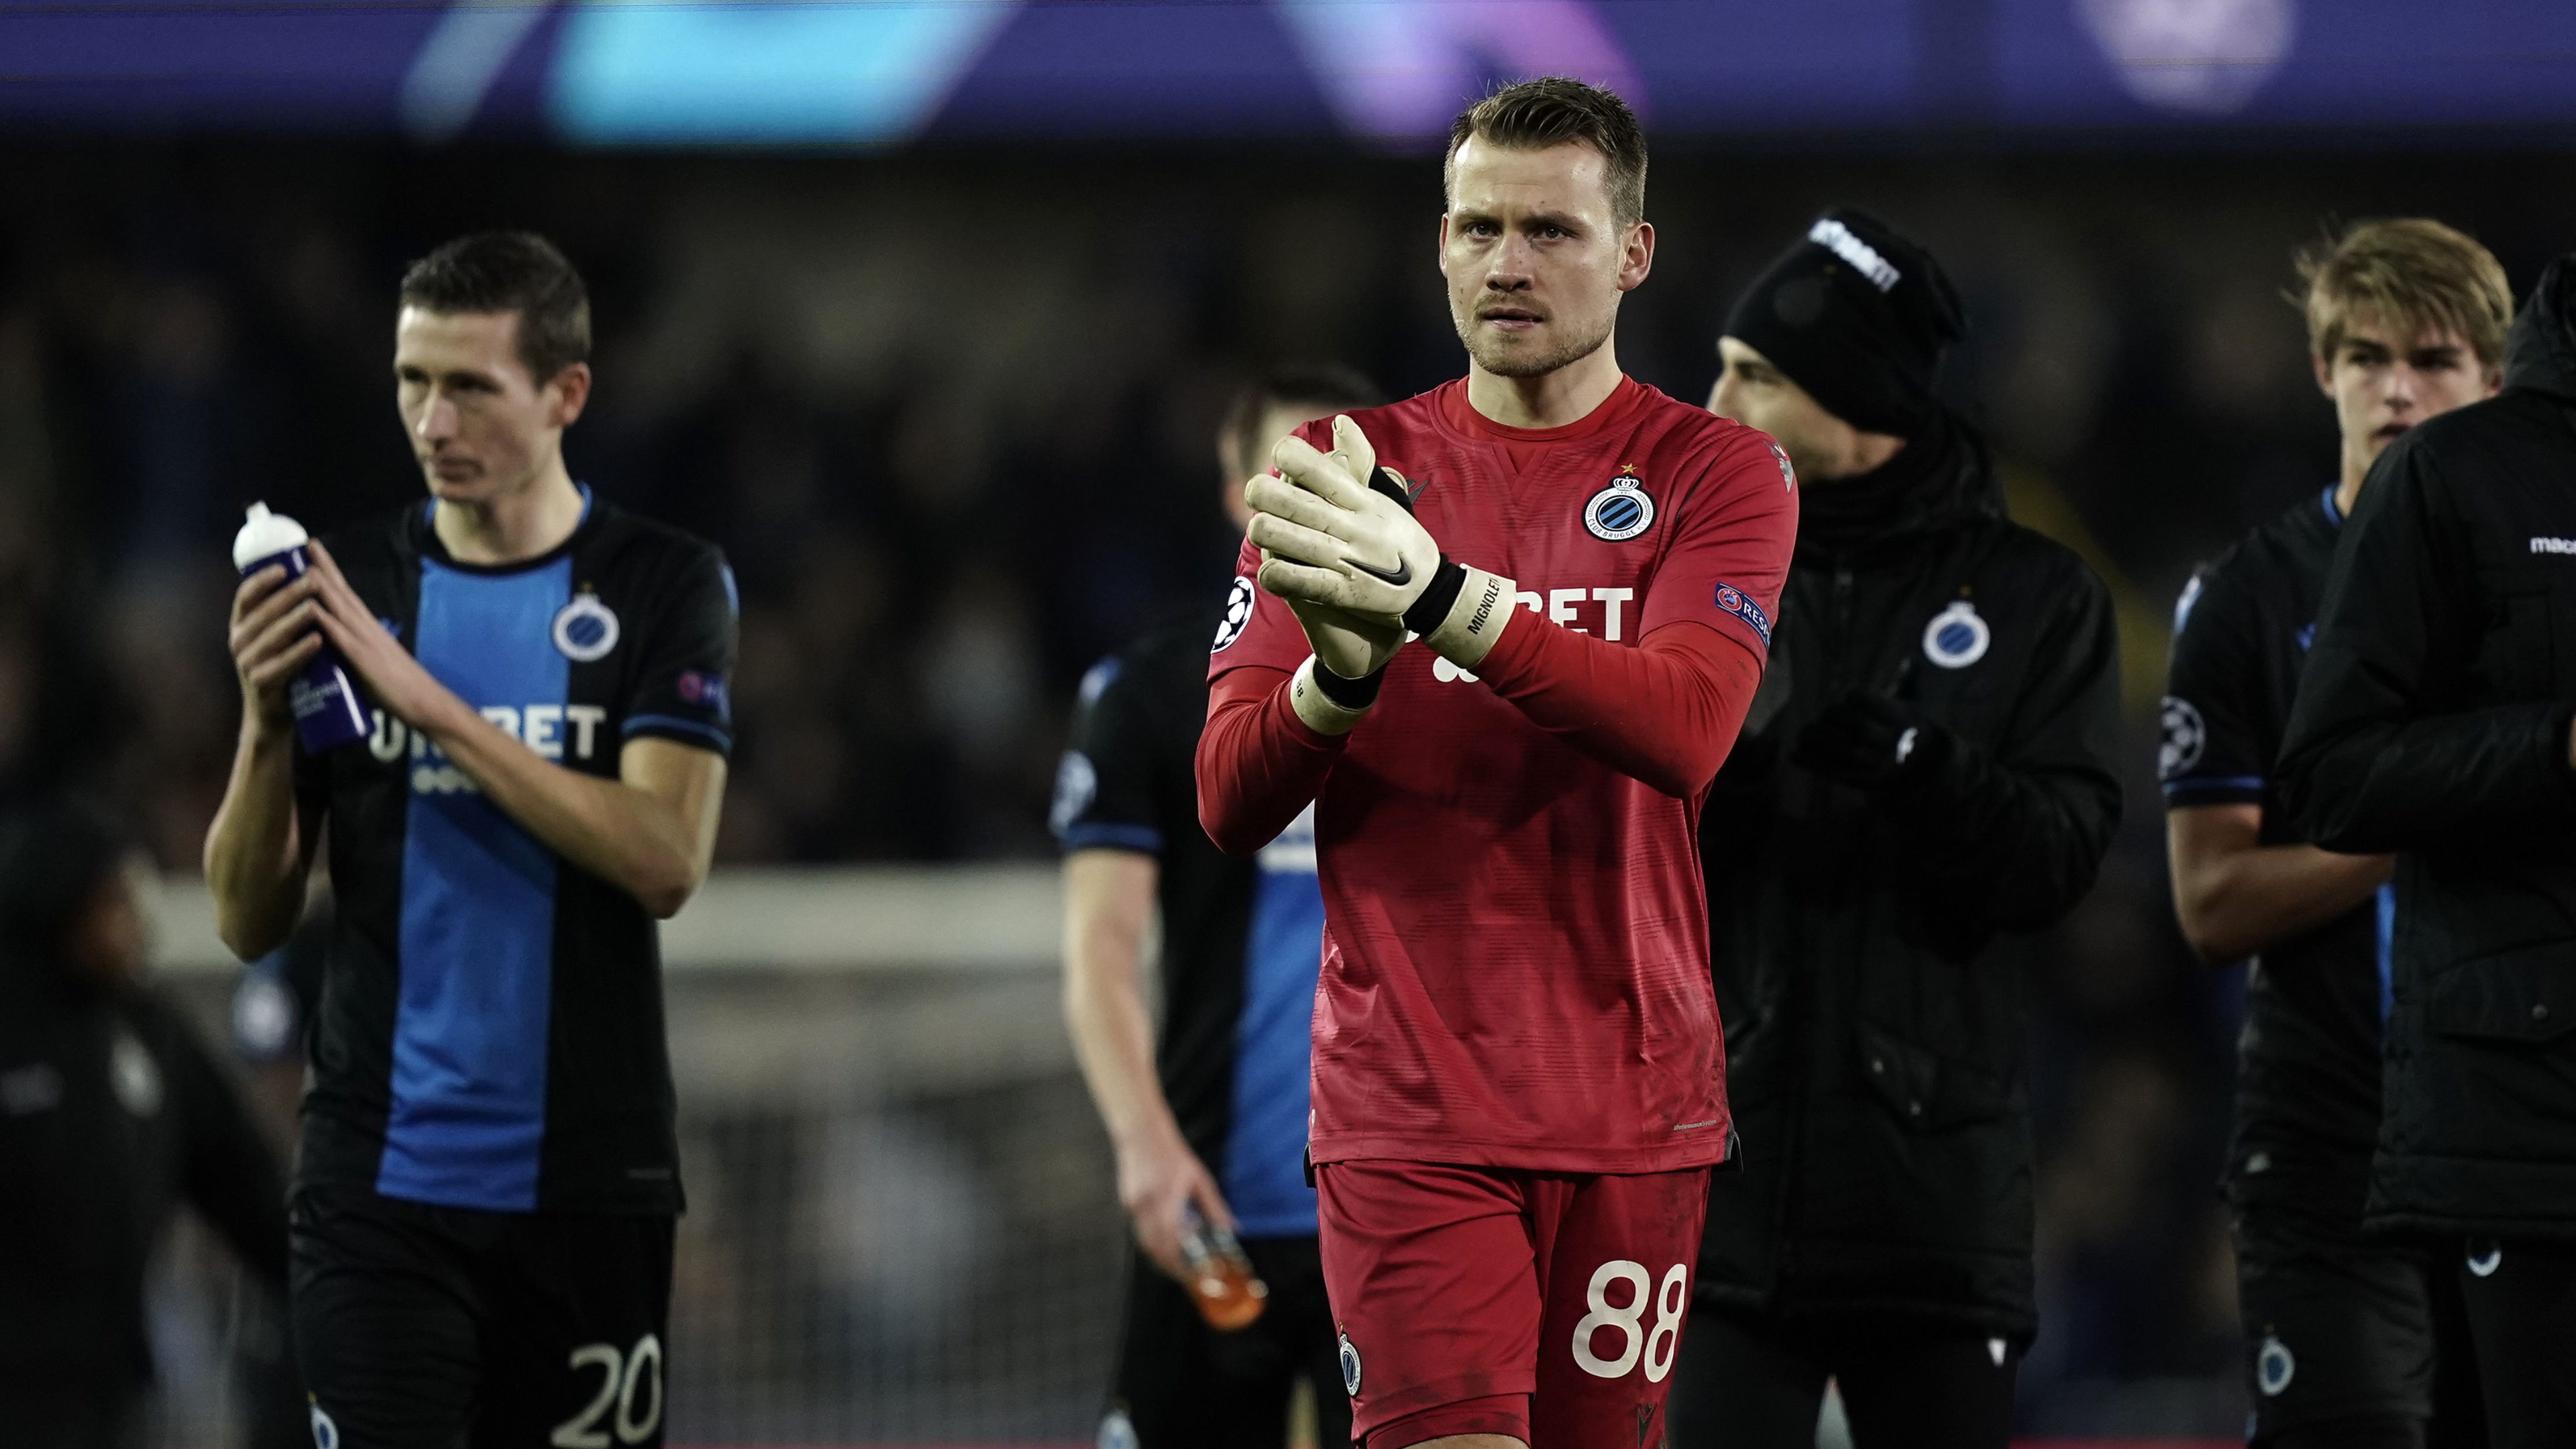 Belgium's Pro League cancelled and Club Brugge set to be declared champions due to coronavirus